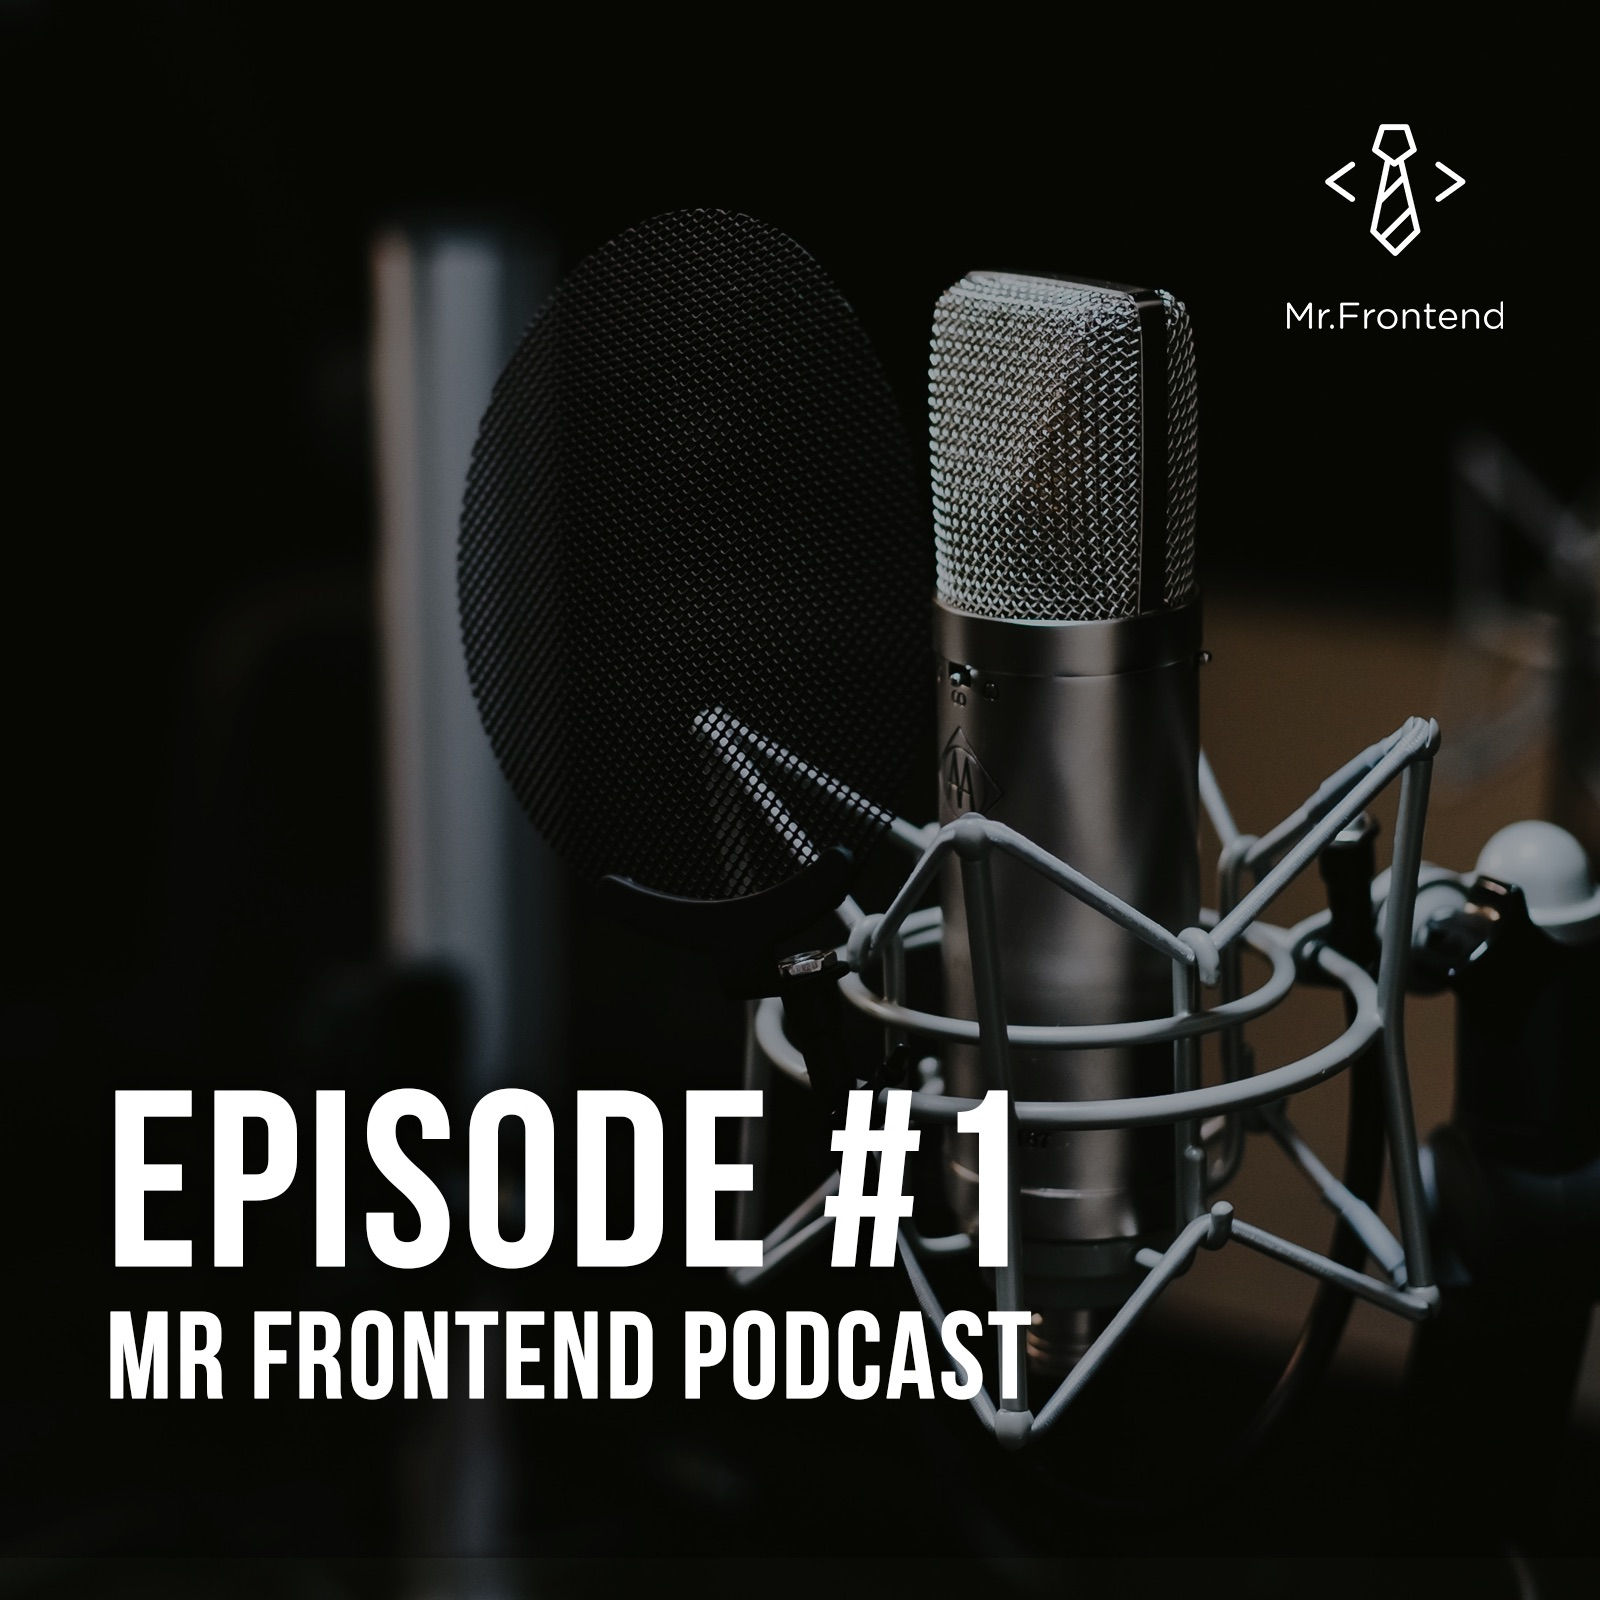 Mr Frontend Podcast Episode #1 - The JavaScript Framework War